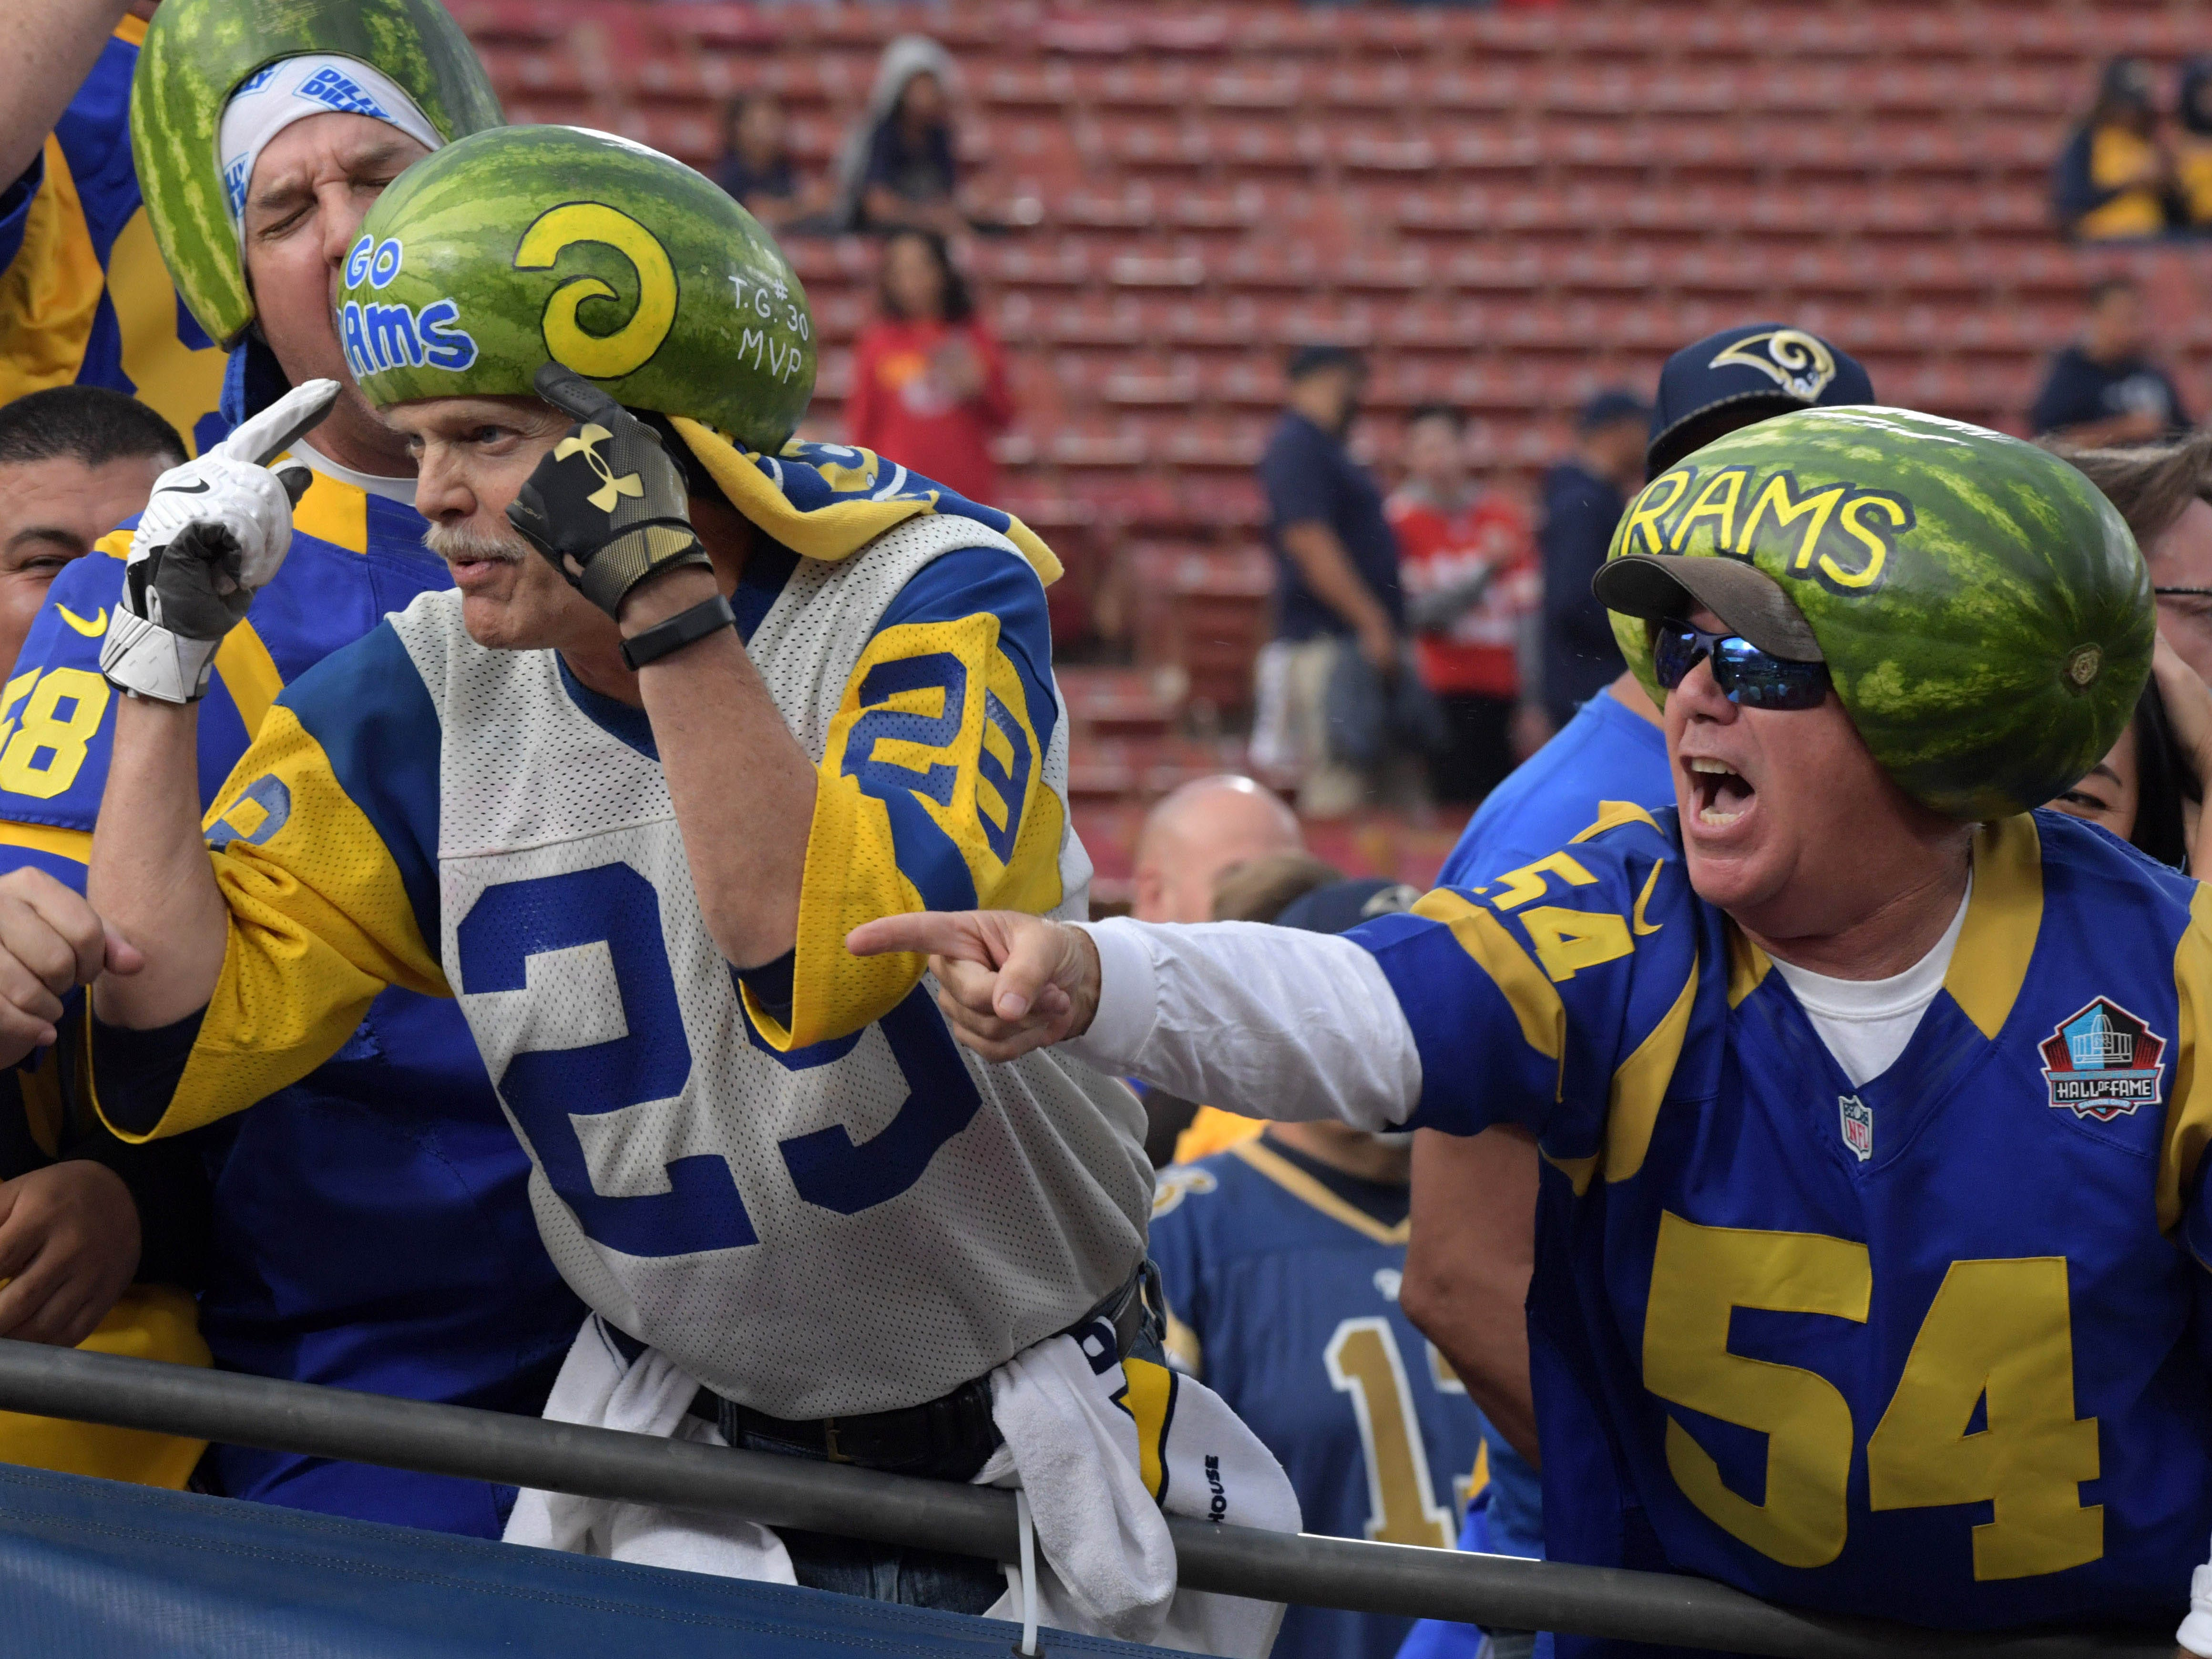 Los Angeles Rams fans wear watermelons on their heads prior to the Rams' game against the Kansas City Chiefs at the Los Angeles Memorial Coliseum.